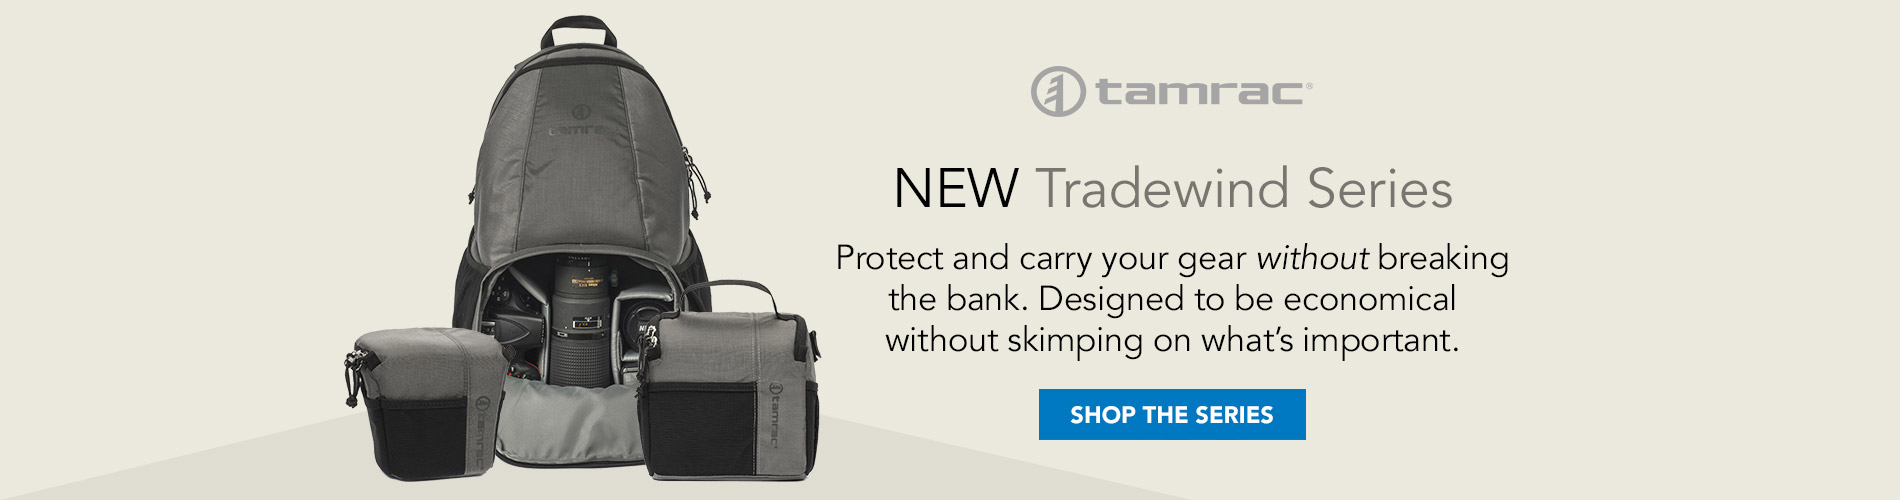 Tamrac | NEW Tradewind Series: Protect and carry your gear without breaking the bank. Designed to be economical without skimping on what's important. Shop the Series >